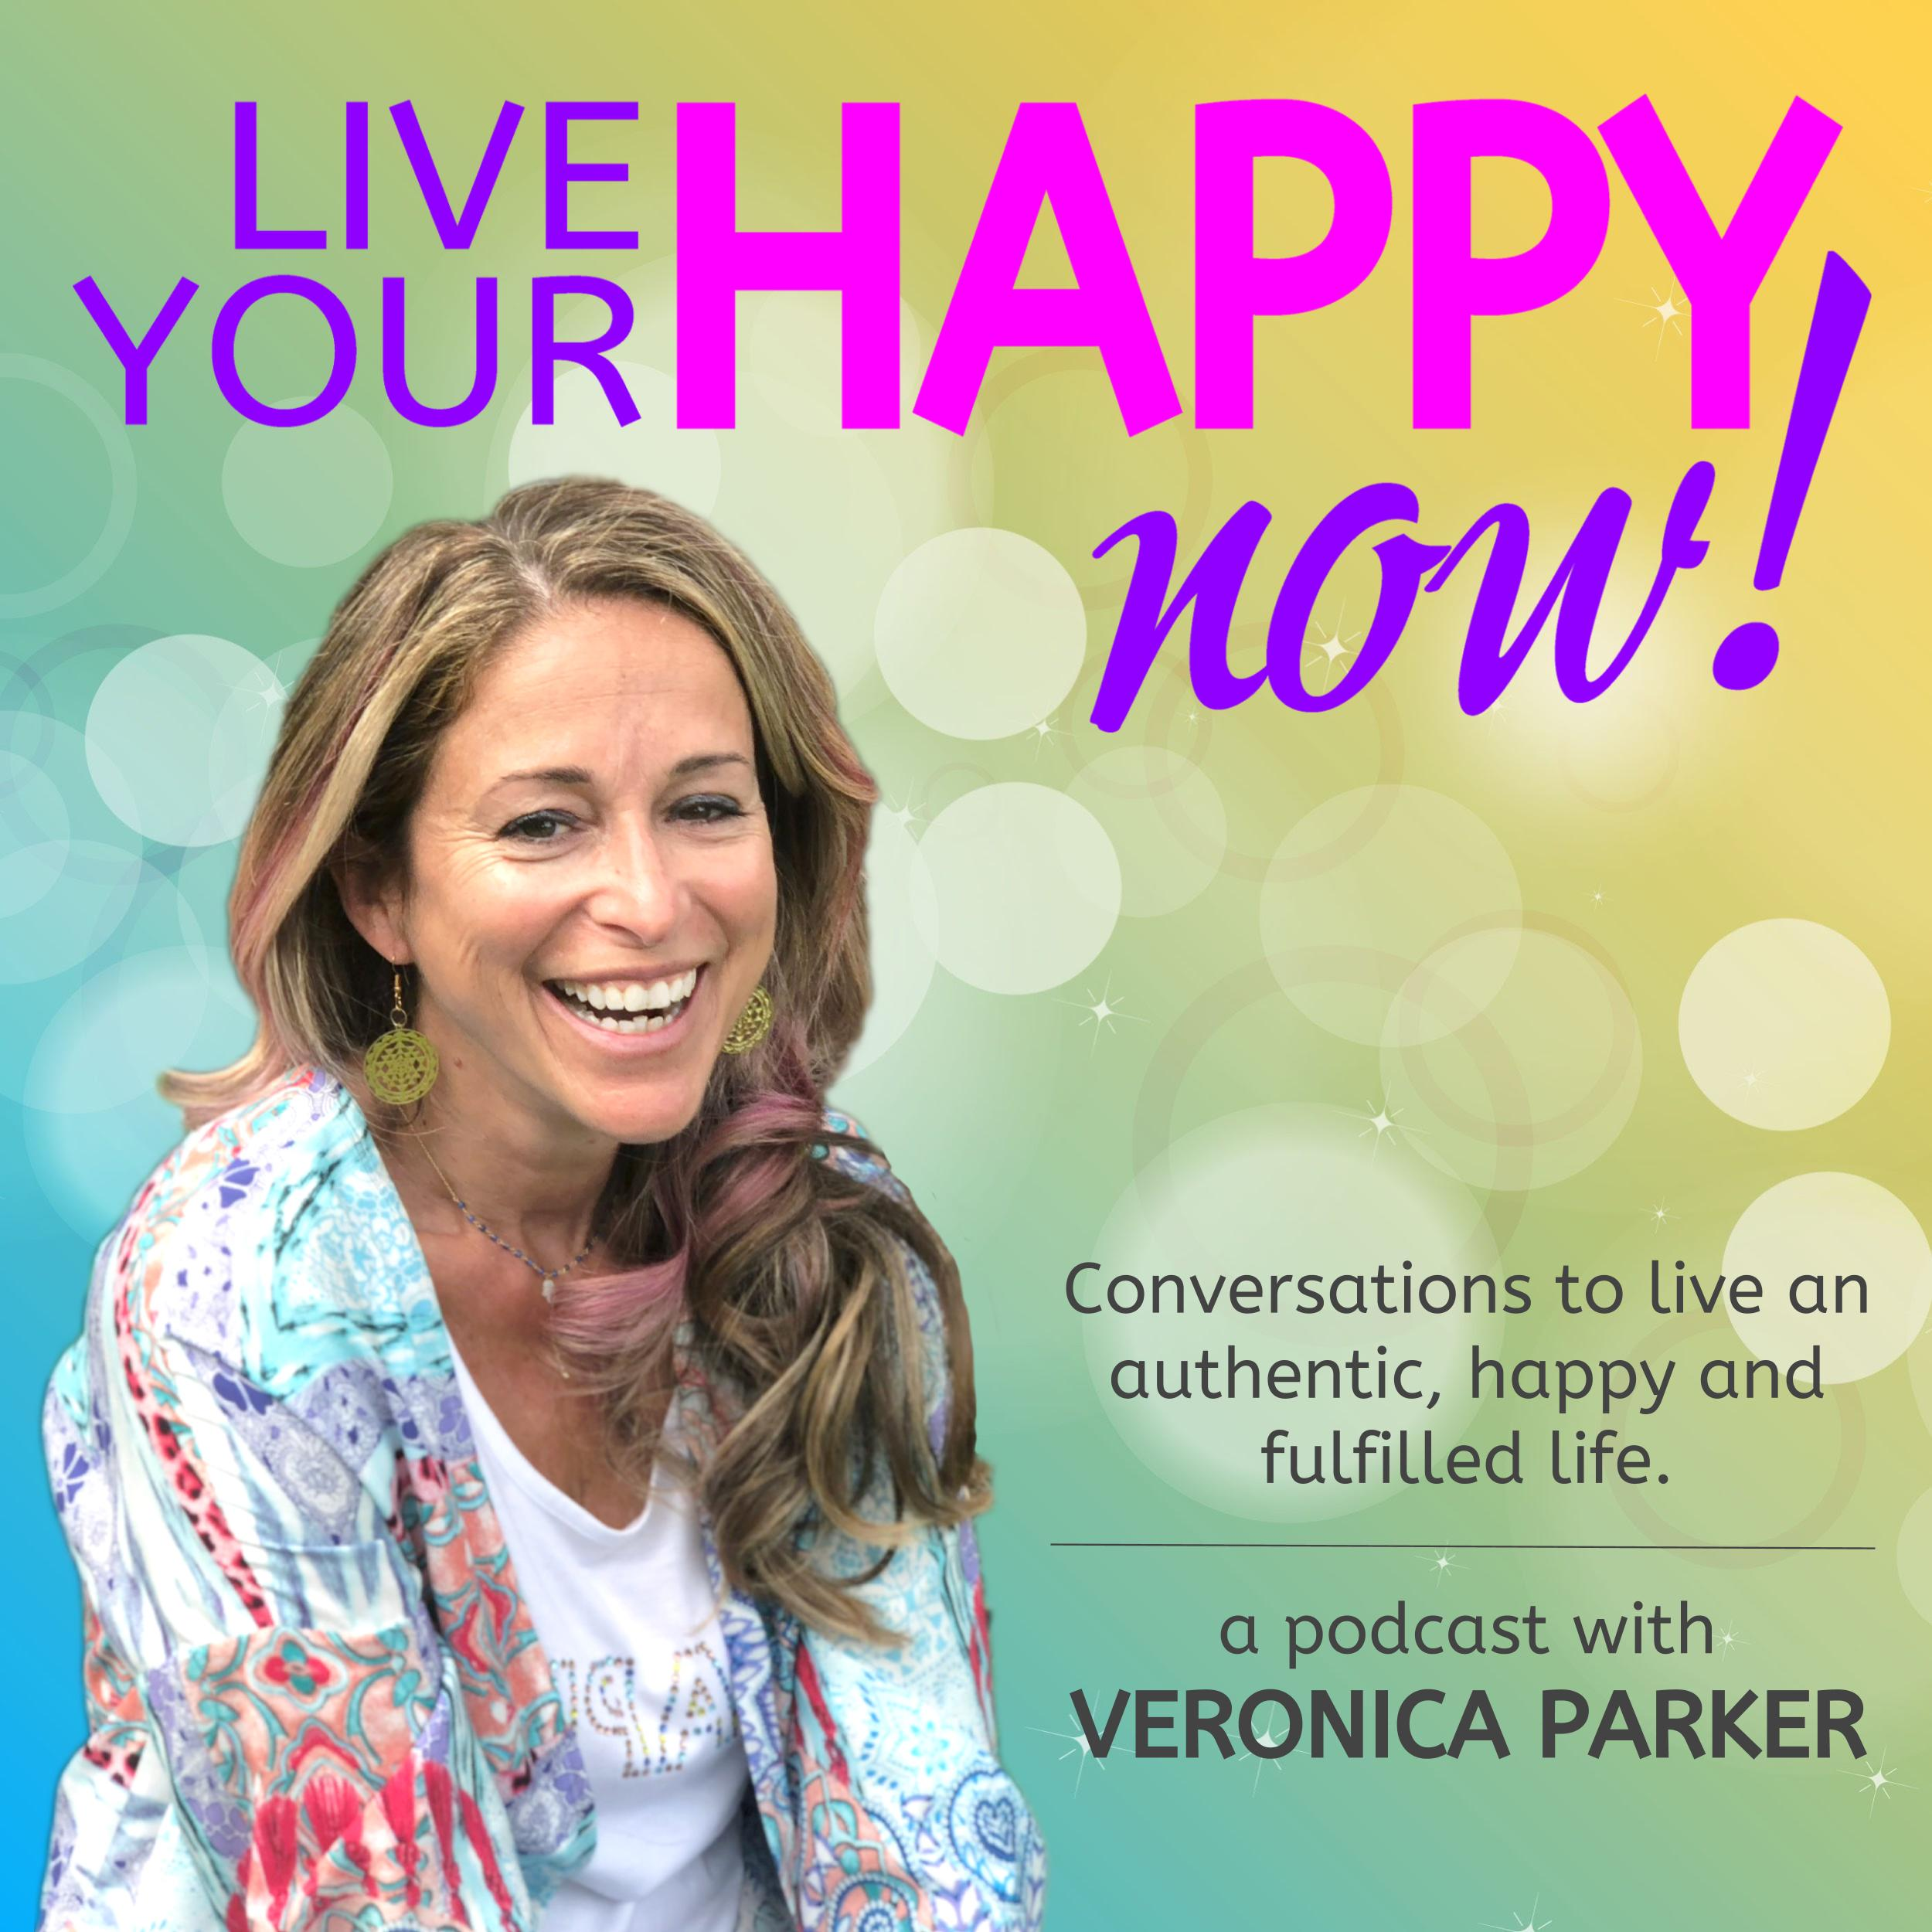 Live Your Happy NOW! Conversations to open up and live an authentic, happy and fulfilled life. show art